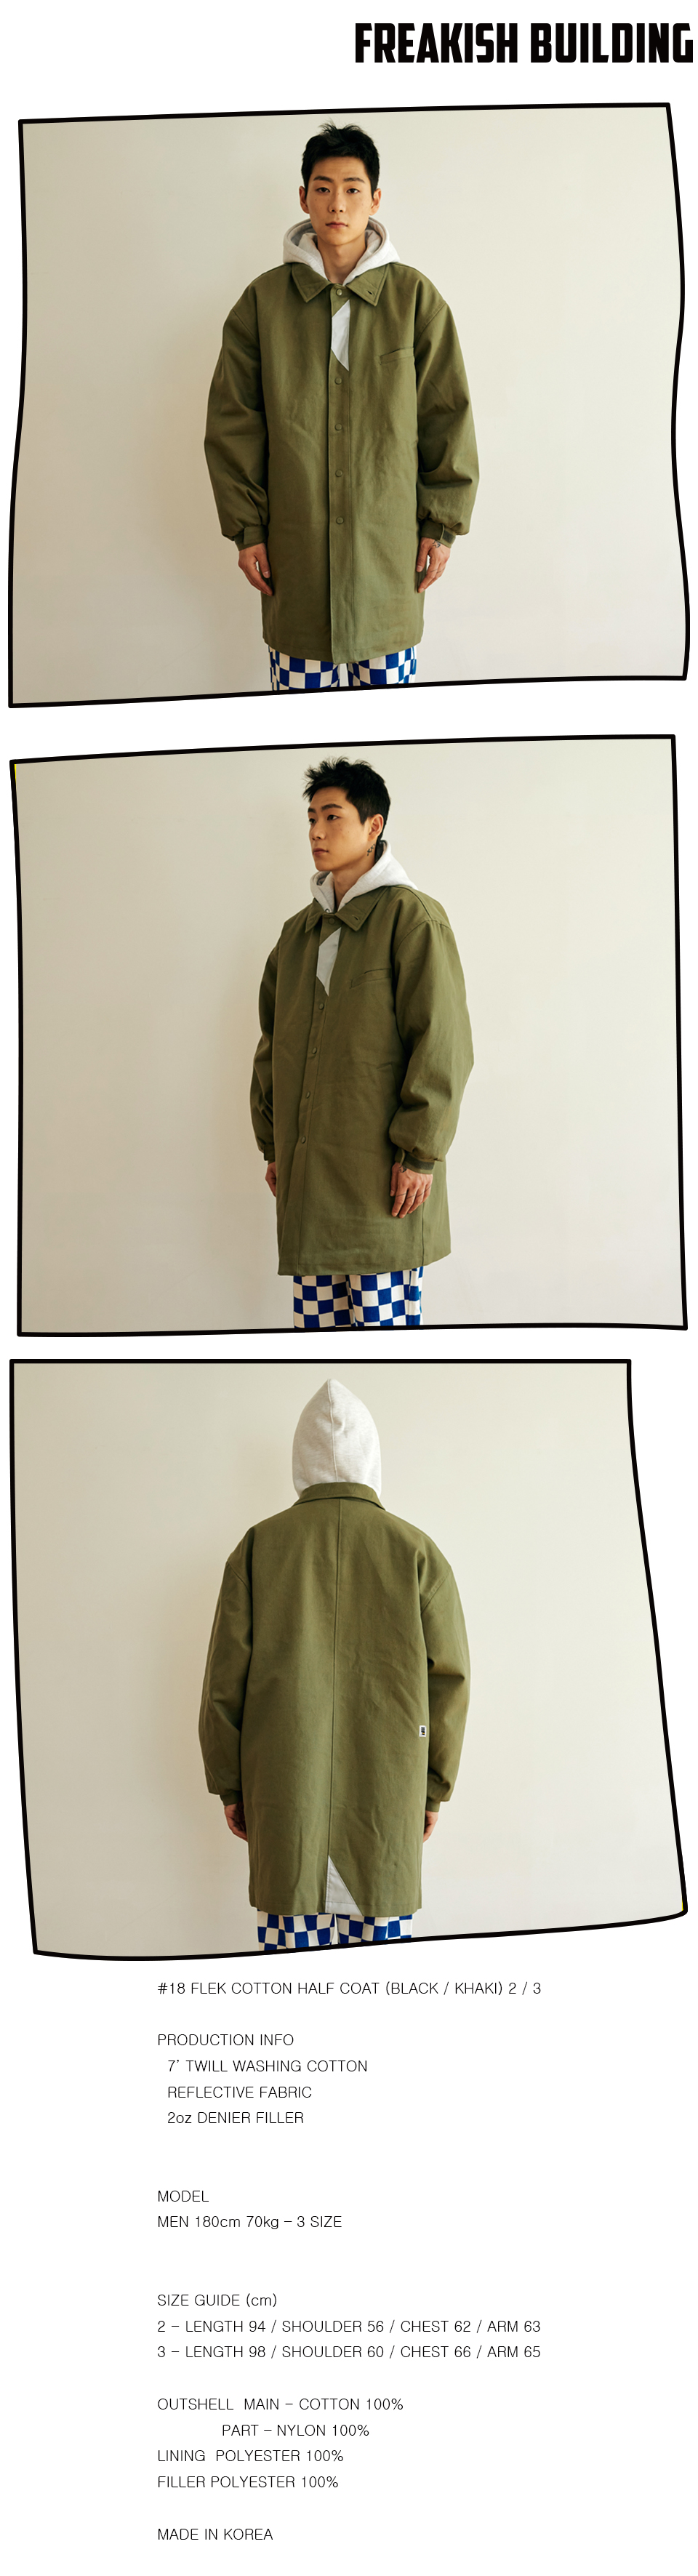 #18 FLEK COTTON HALF COAT (KHAKI) 02.jpg